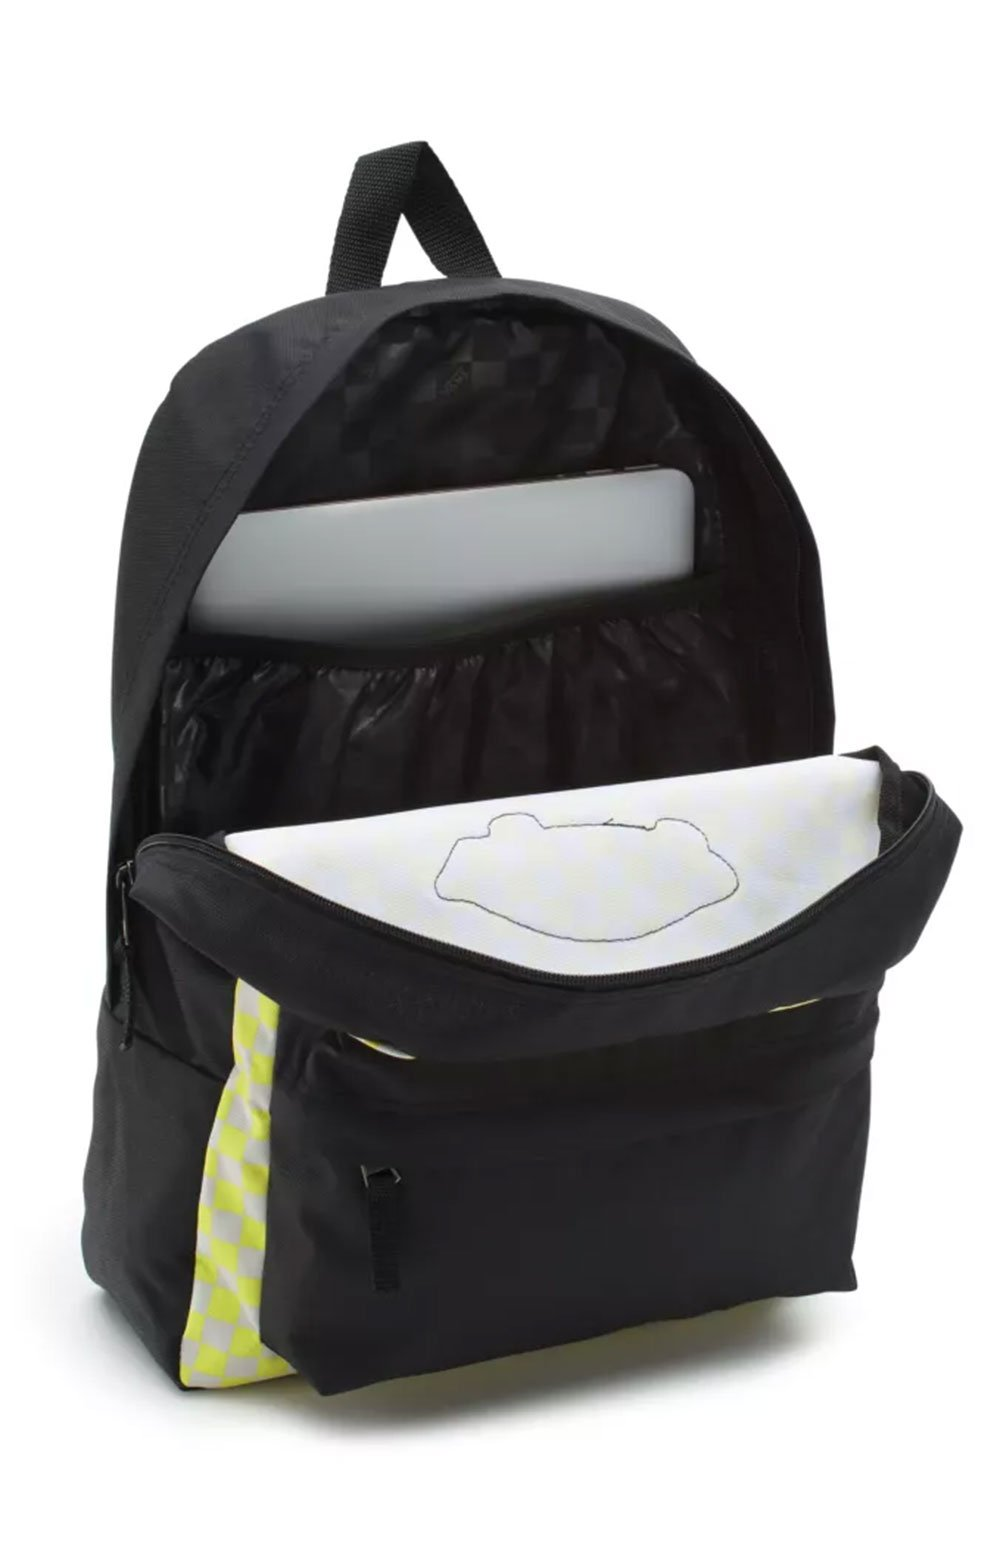 Realm Printed Backpack - Lemon Tonic Checkerboard  2